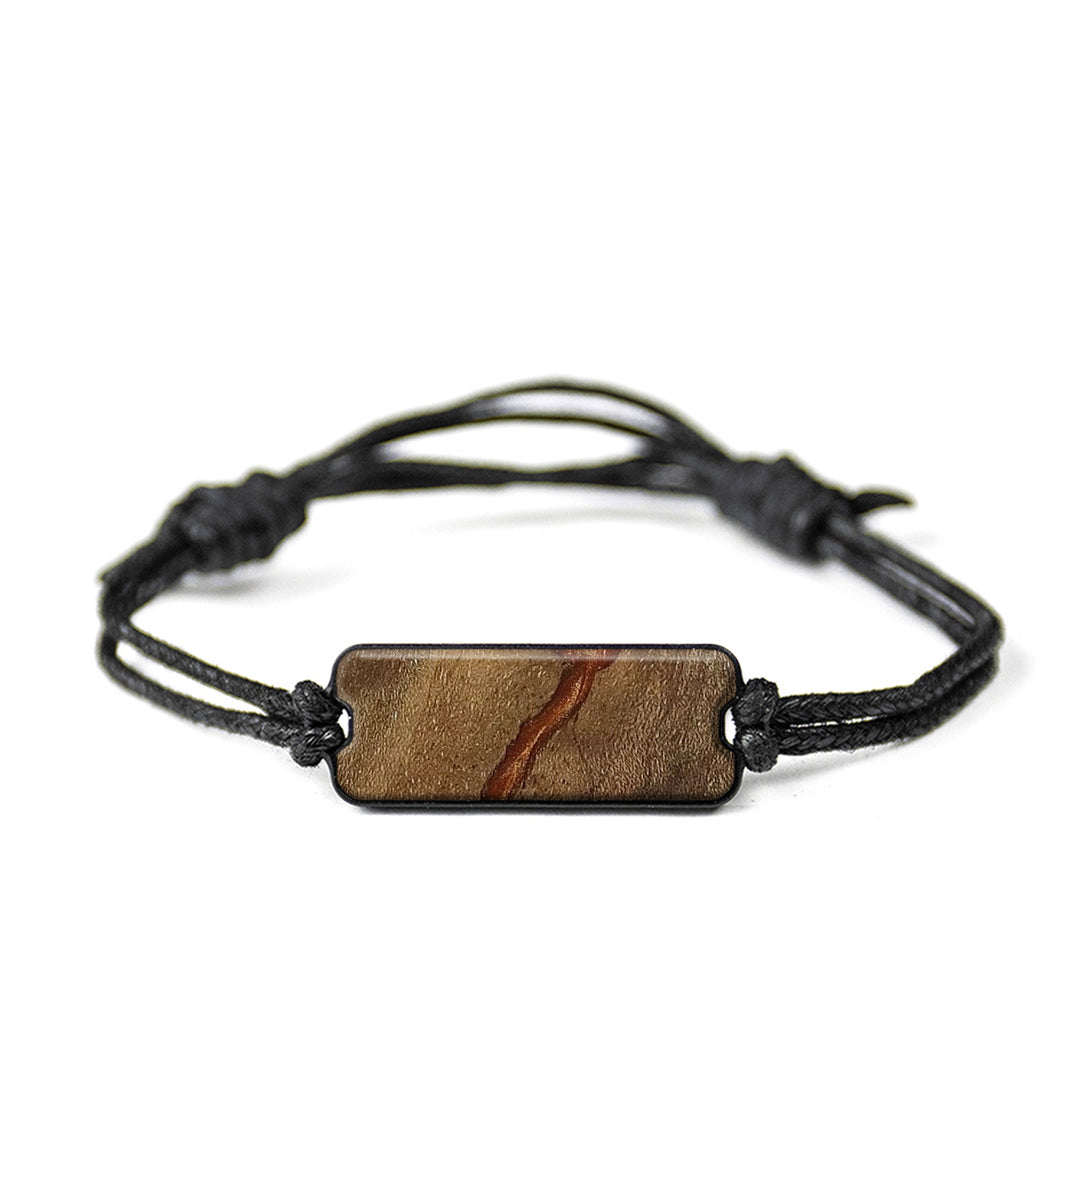 Classic Wood+Resin Bracelet - Evans (Walnut Burl, 367165)